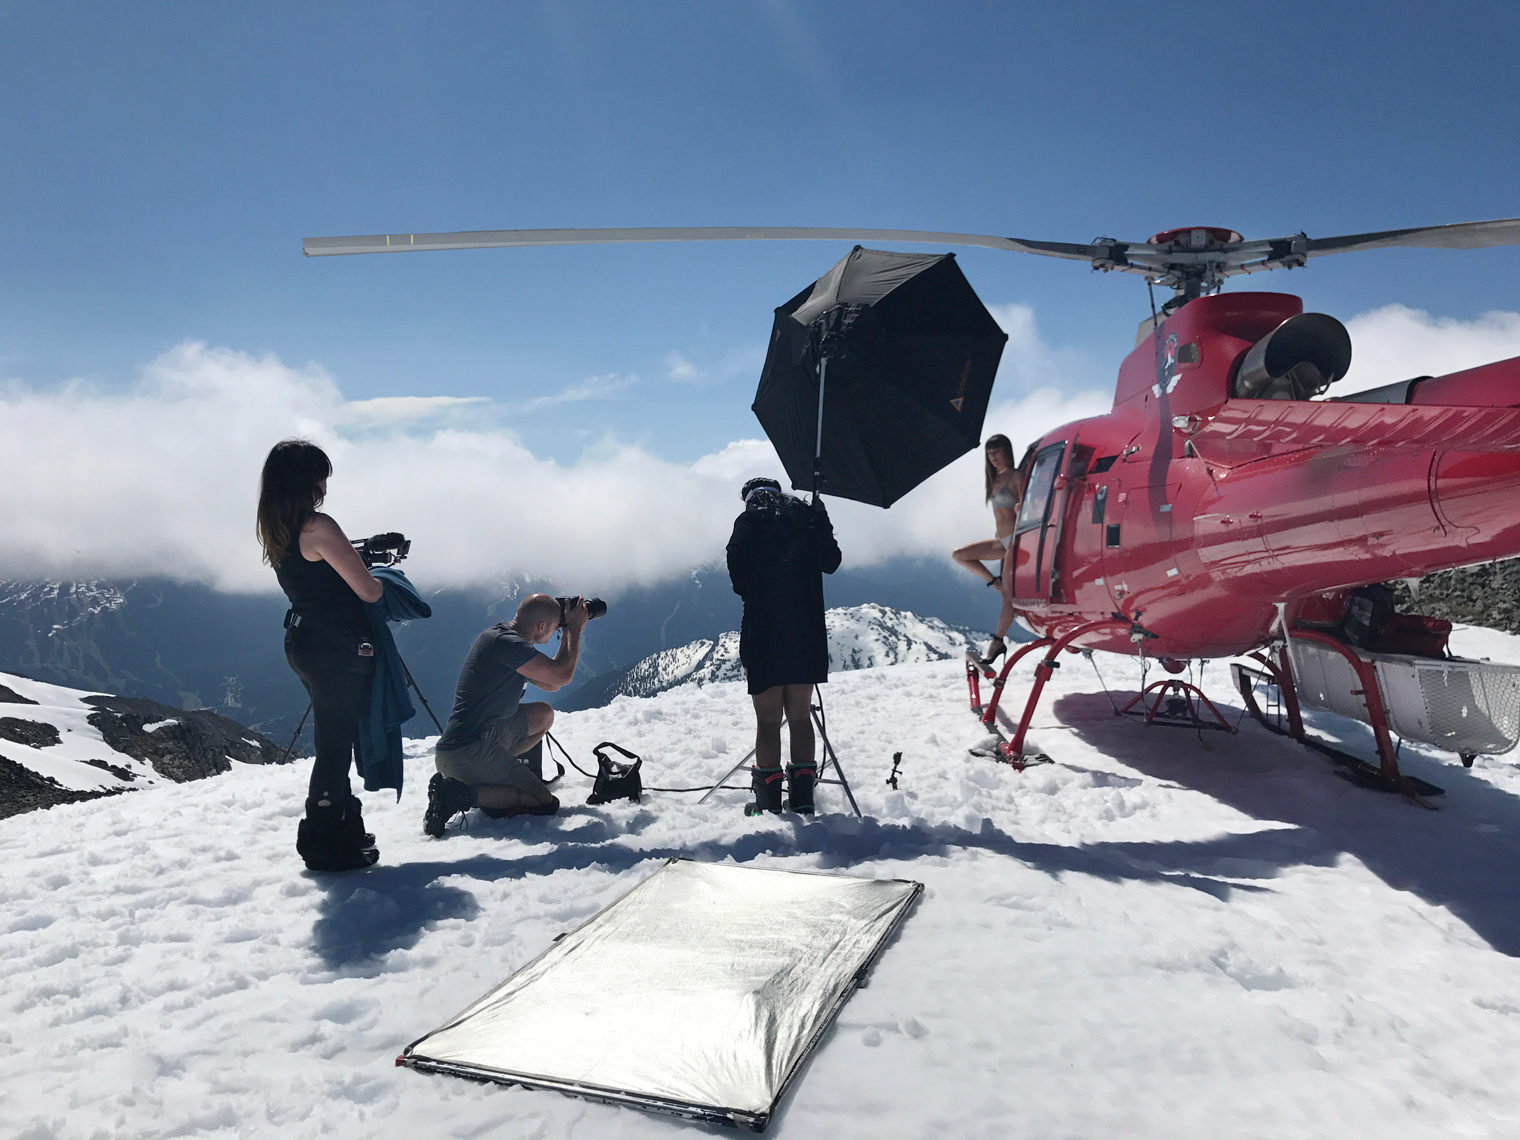 2017-Vancouver-BTS-Photographer-ErichSaide-Behindthescenes-Whistler-Bikini-Snow-Mountain